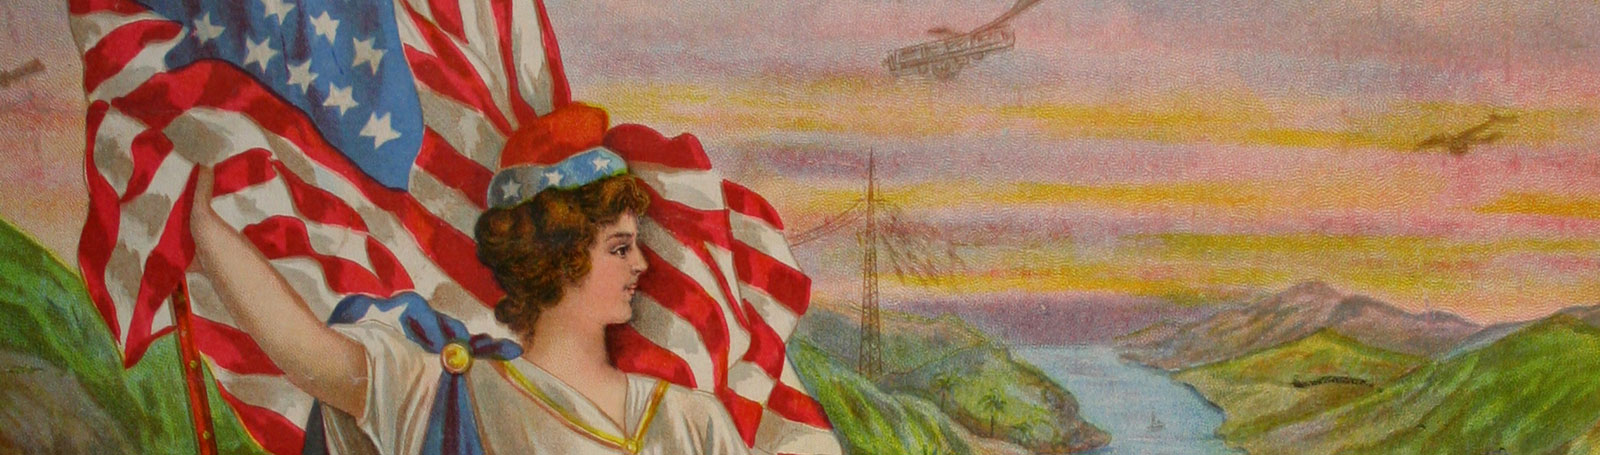 Lady liberty flying the American flag whilst overlooking idyllic landscape with hints of industrialisation: electricity pylons and airplanes